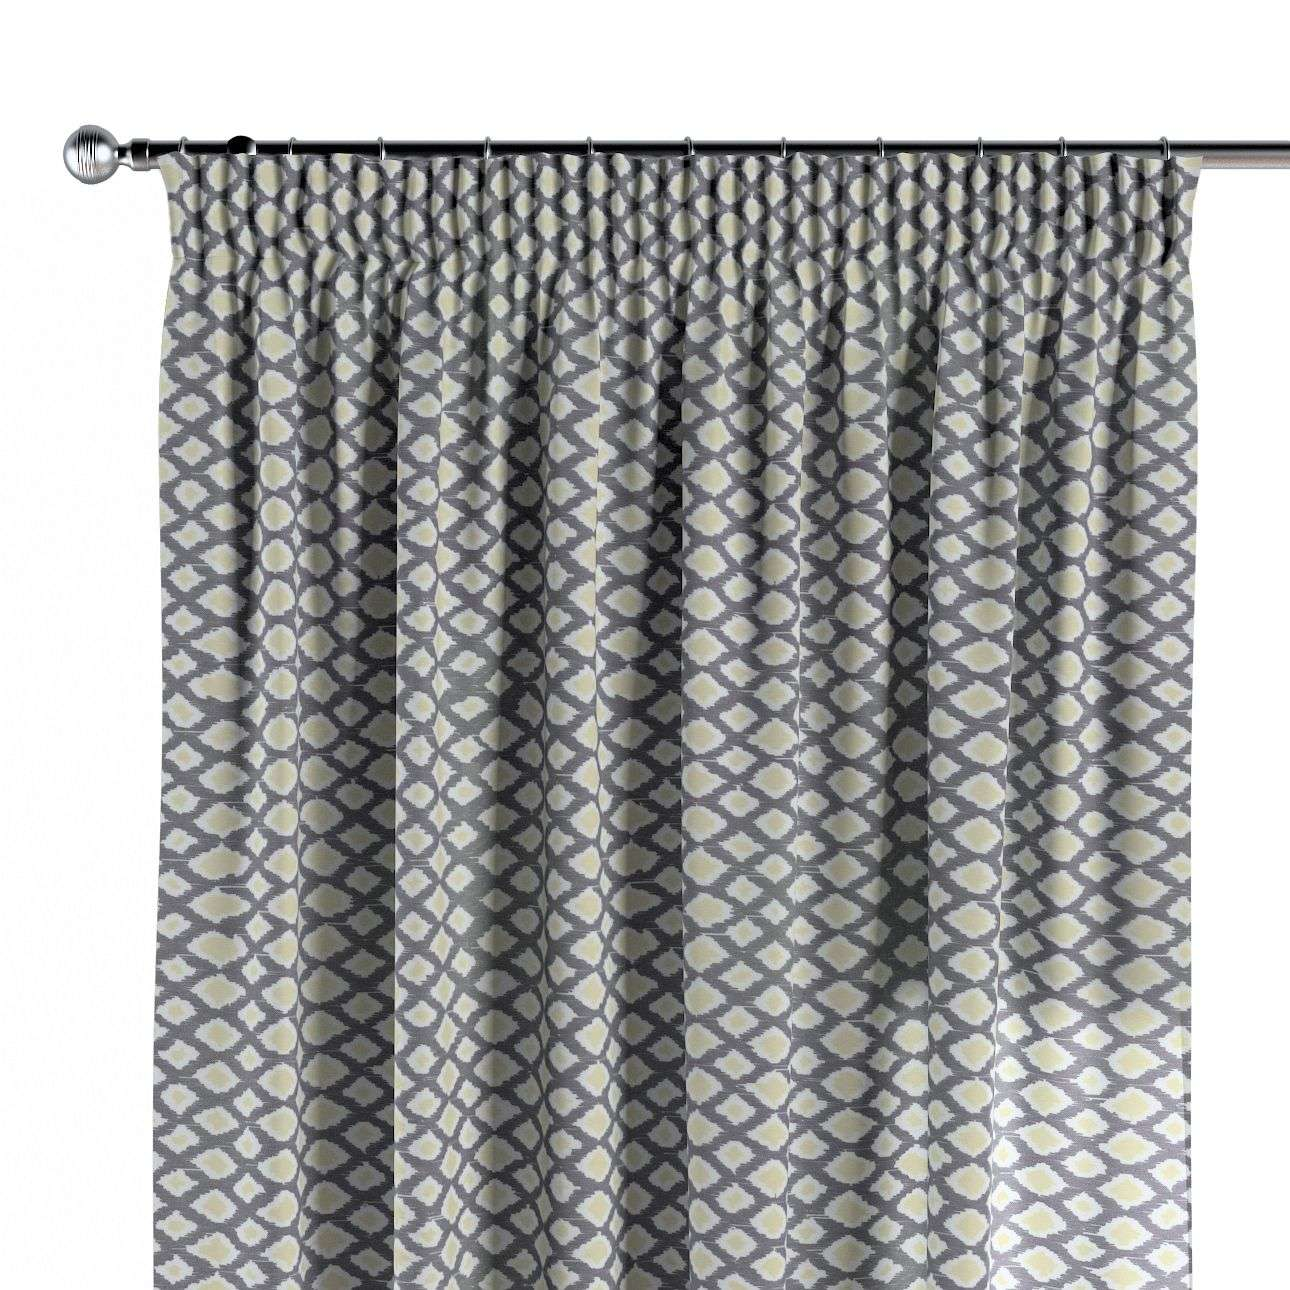 Pencil pleat curtains 130 x 260 cm (51 x 102 inch) in collection Comic Book & Geo Prints, fabric: 141-21